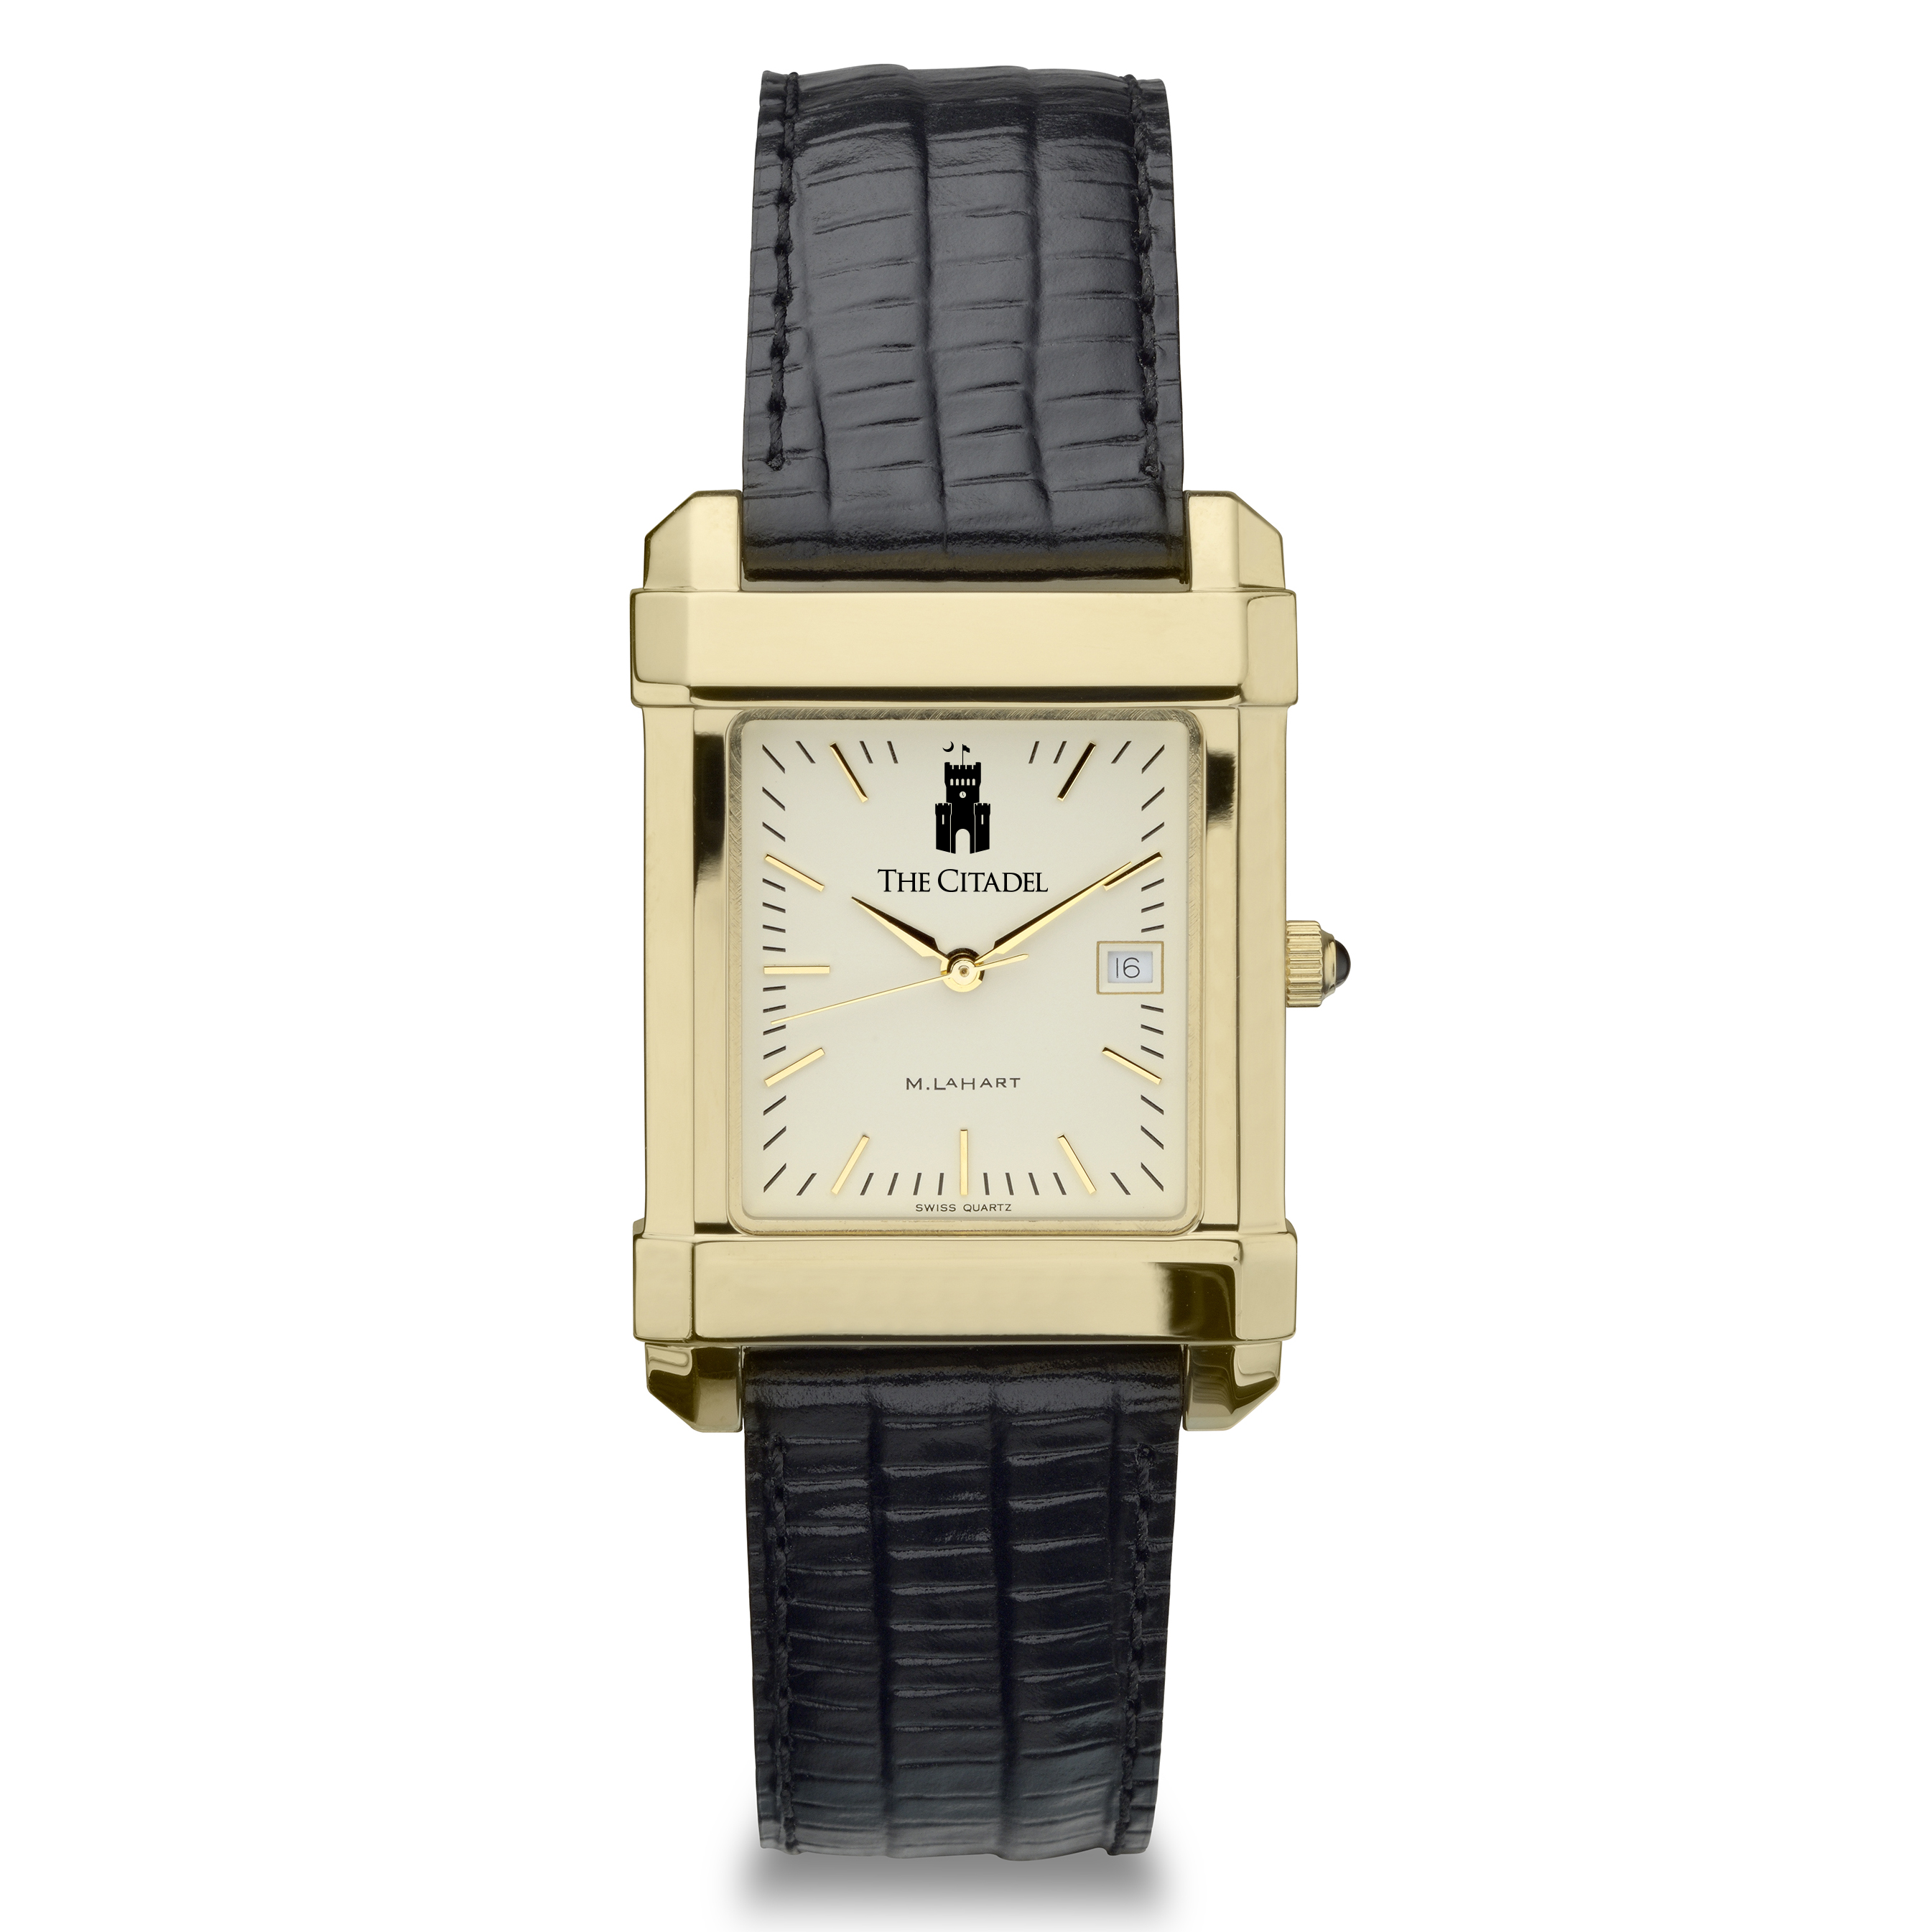 Citadel Men's Gold Quad Watch with Leather Strap - Image 2